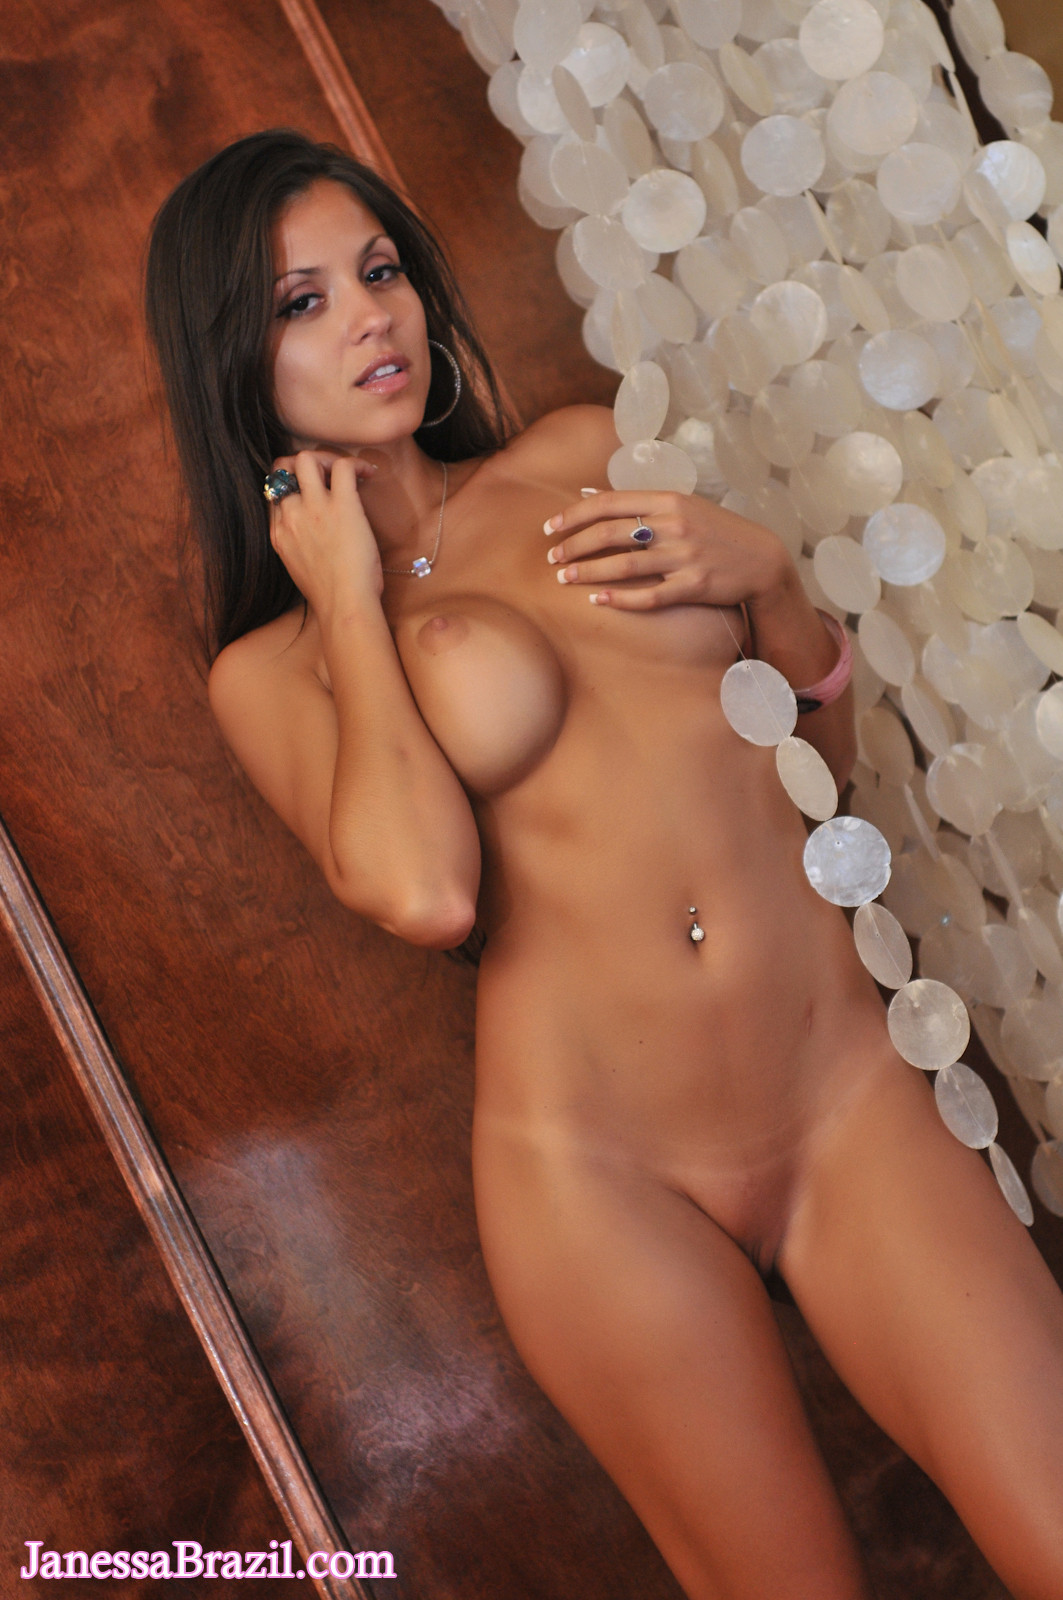 Janessa Brazil - Hot College Girl Getting Naked At The Bar -7834